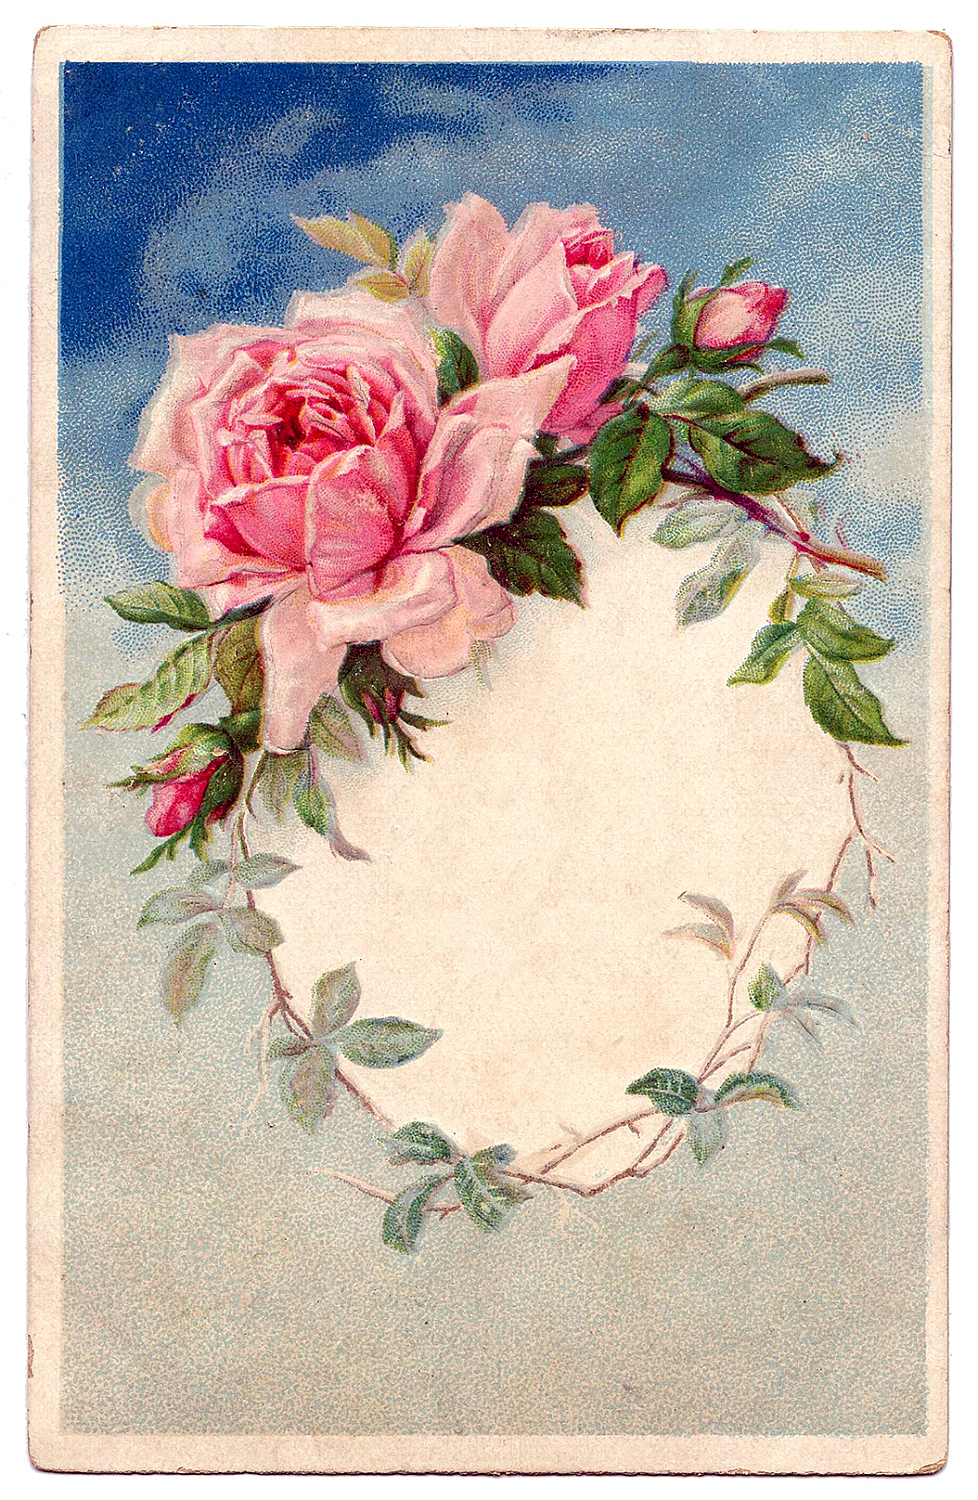 Vintage Rose Wreath Frame Image